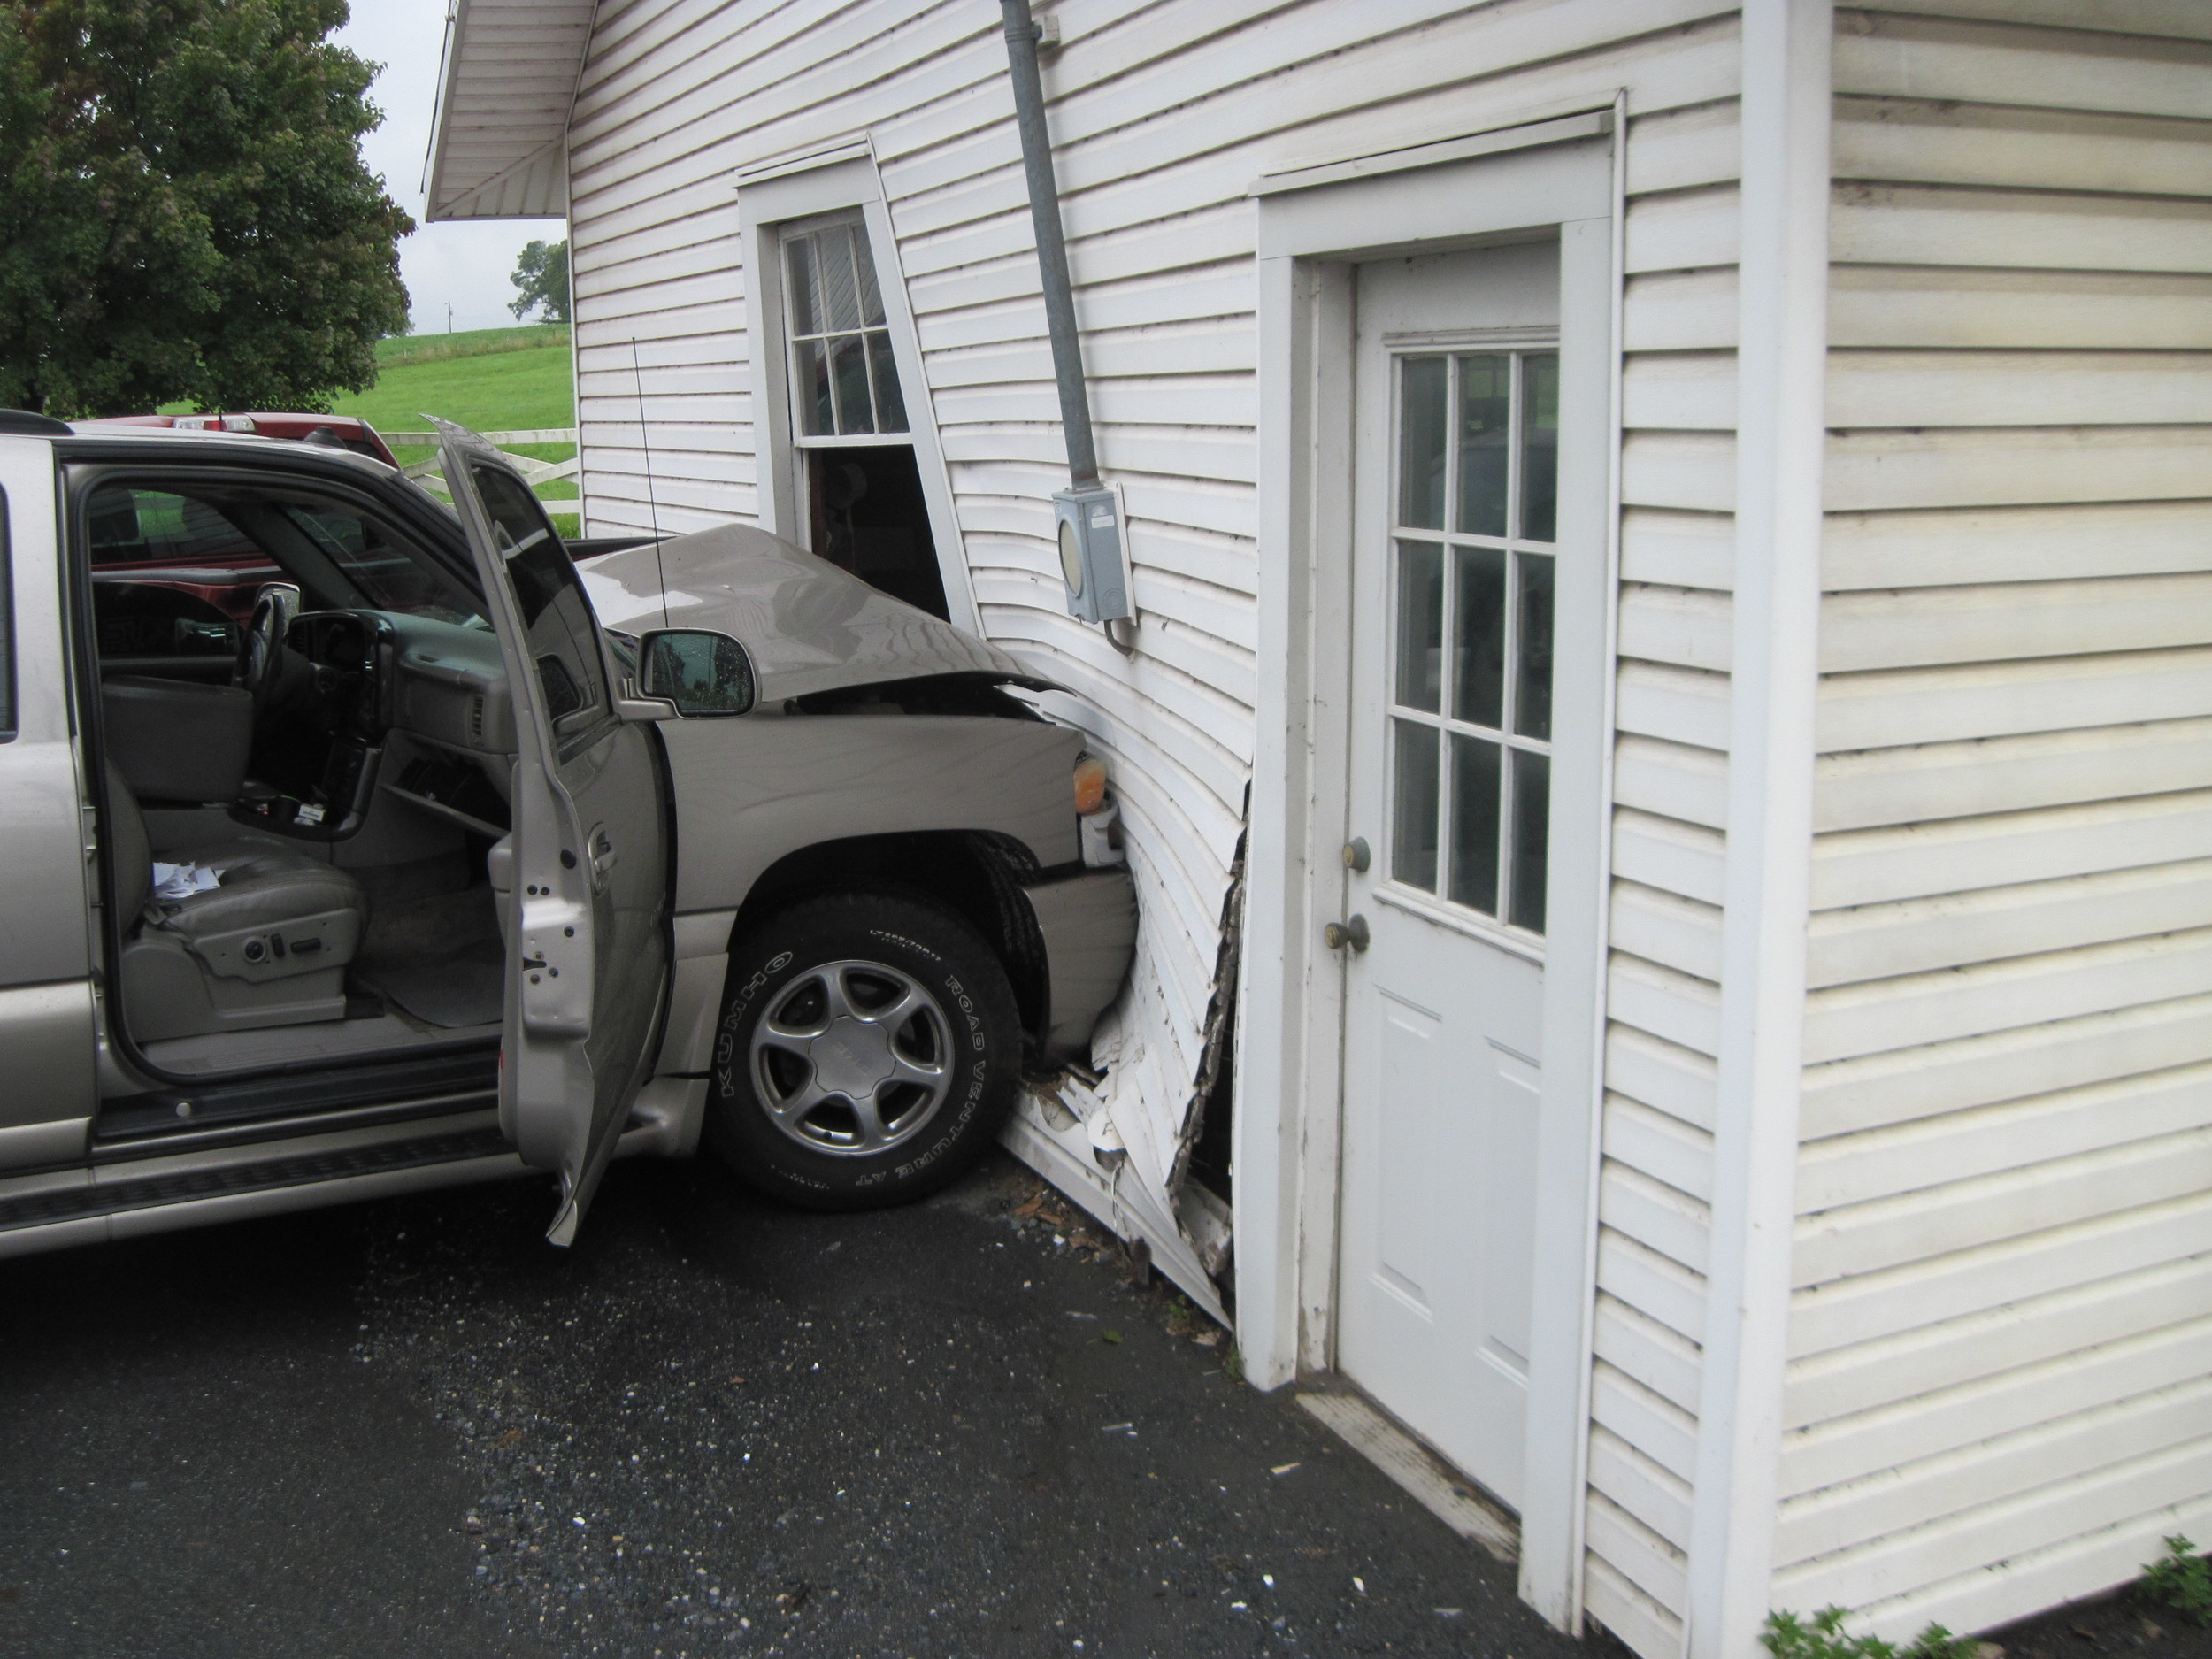 A Middletown resident was charged after her SUV struck a parked truck and a barn in the 2000 block of North Union Street just before 3 p.m. Aug. 29, according to the Lower Swatara Police Department.